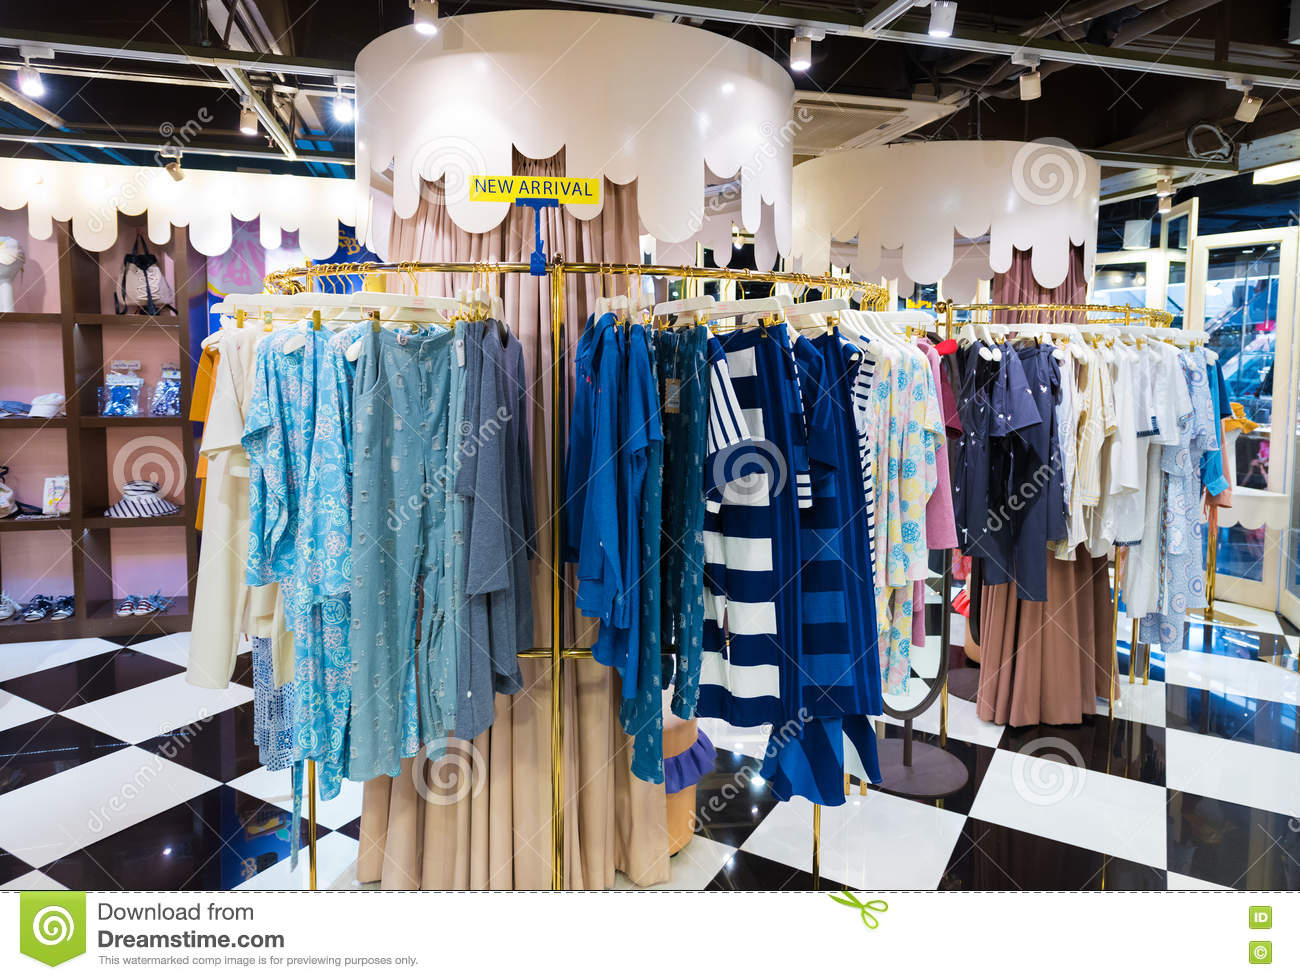 29f8a9ae BANGKOK - MARCH 17, 2016 : Unidentified people choose goods at a ladies  clothing store in the Siam Center. It was built in 1973 and was one of  Bangkoks ...